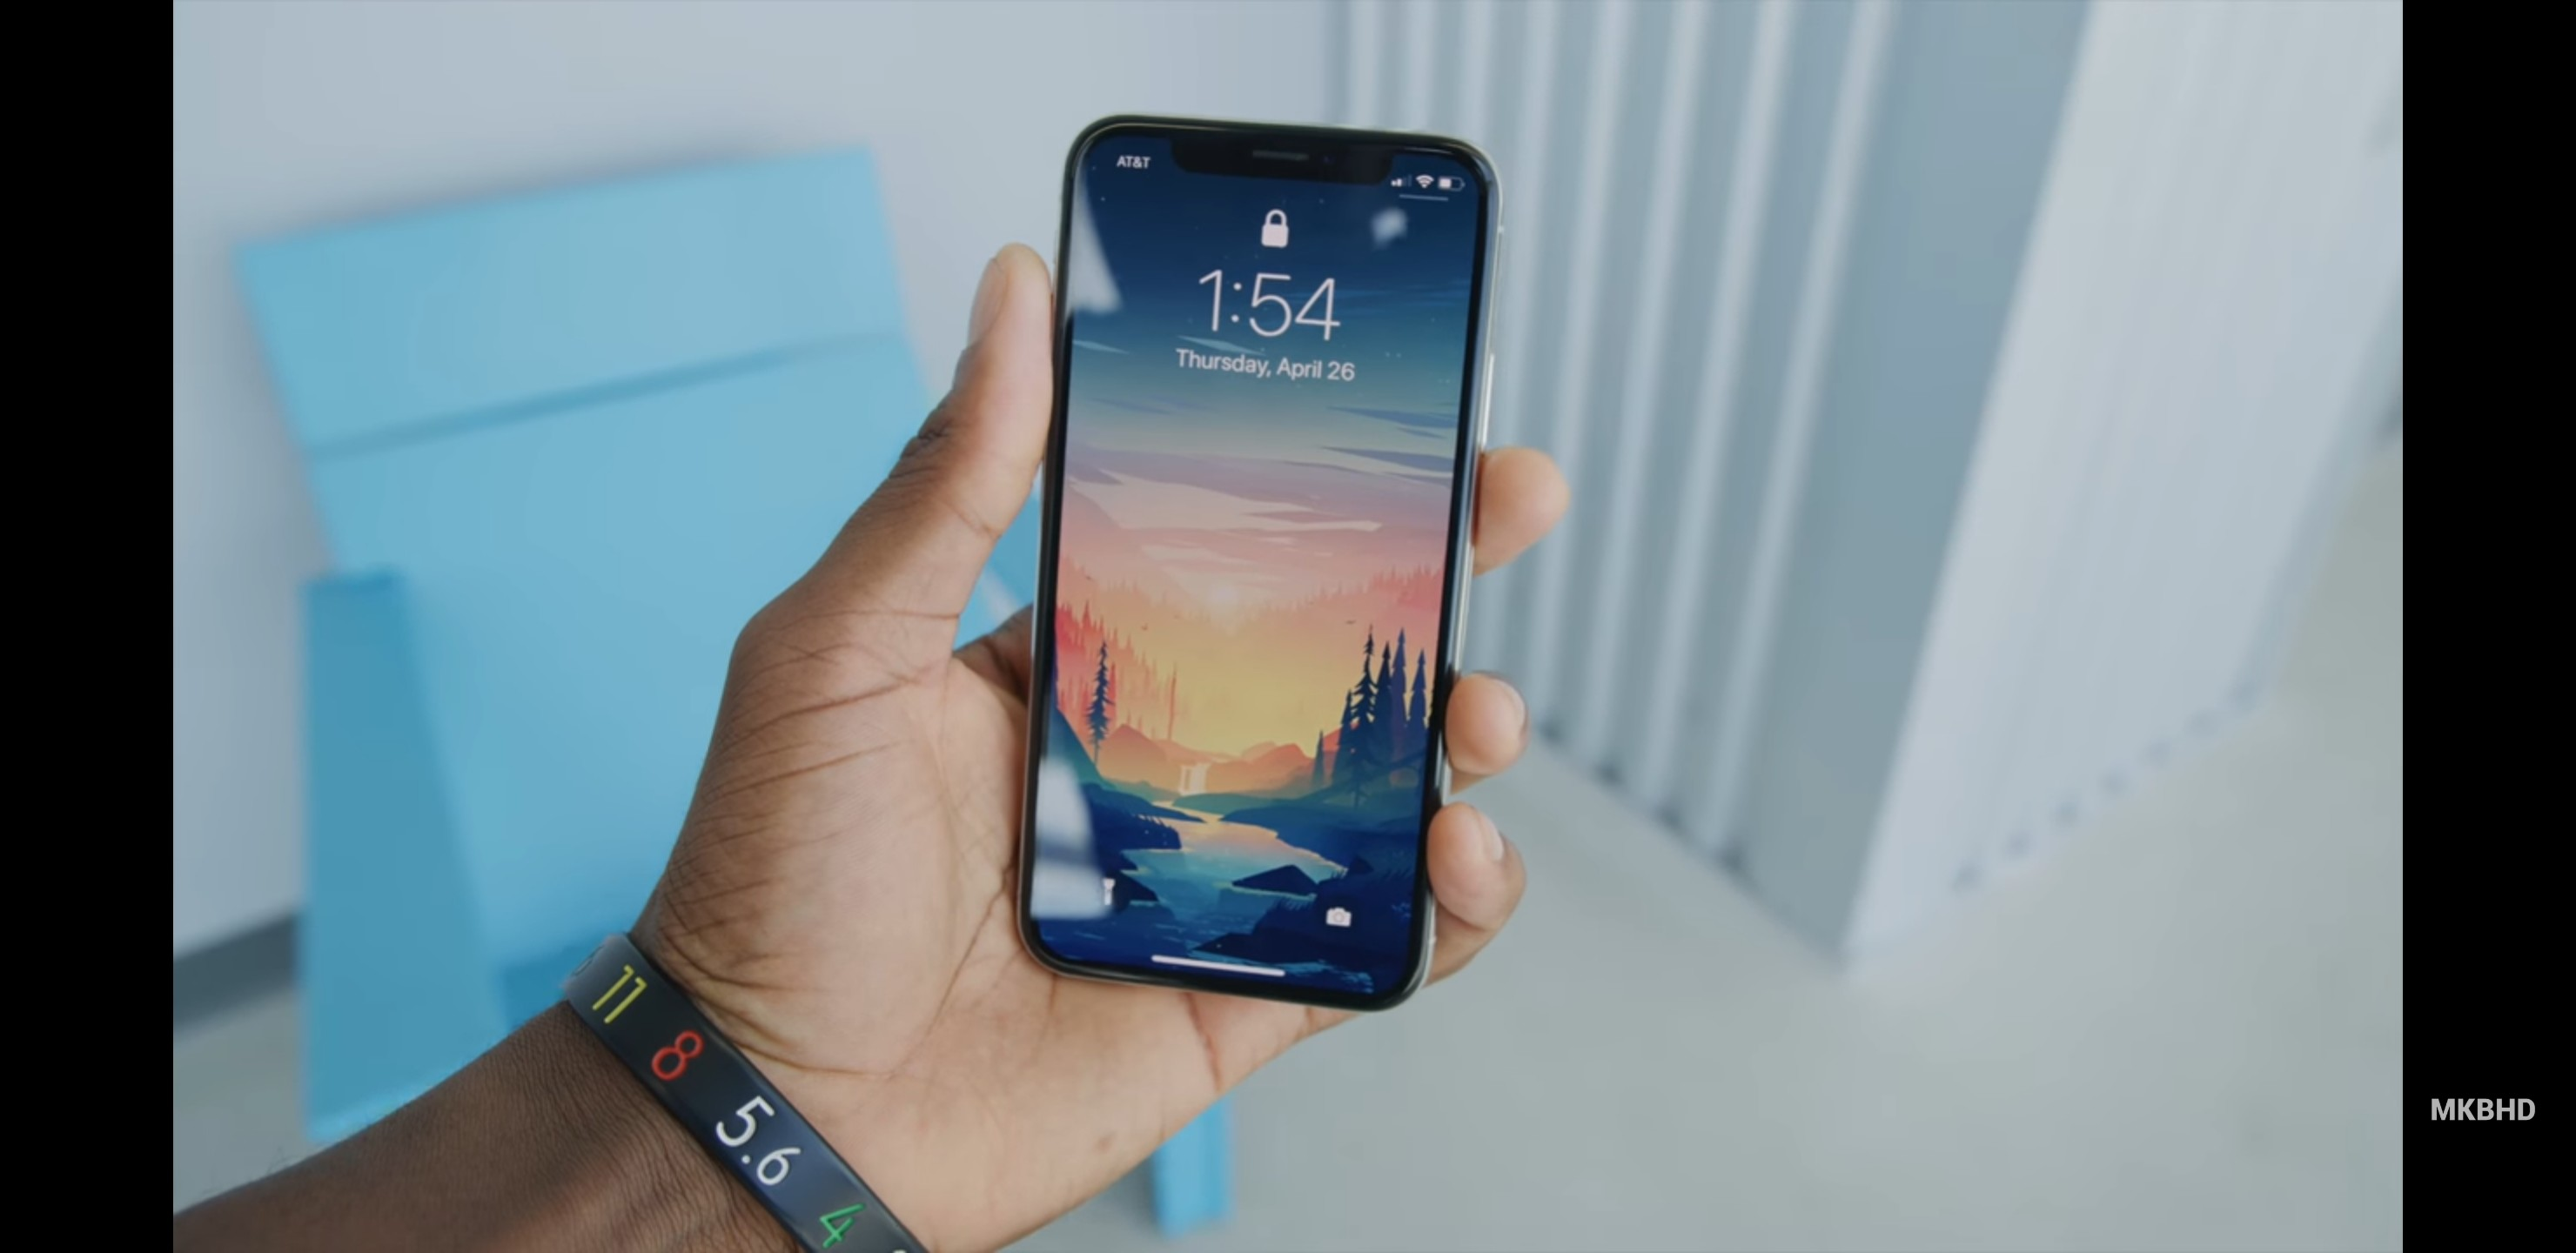 2960x1440 Trying to find this wallpaper from the iPhone X revisited video.